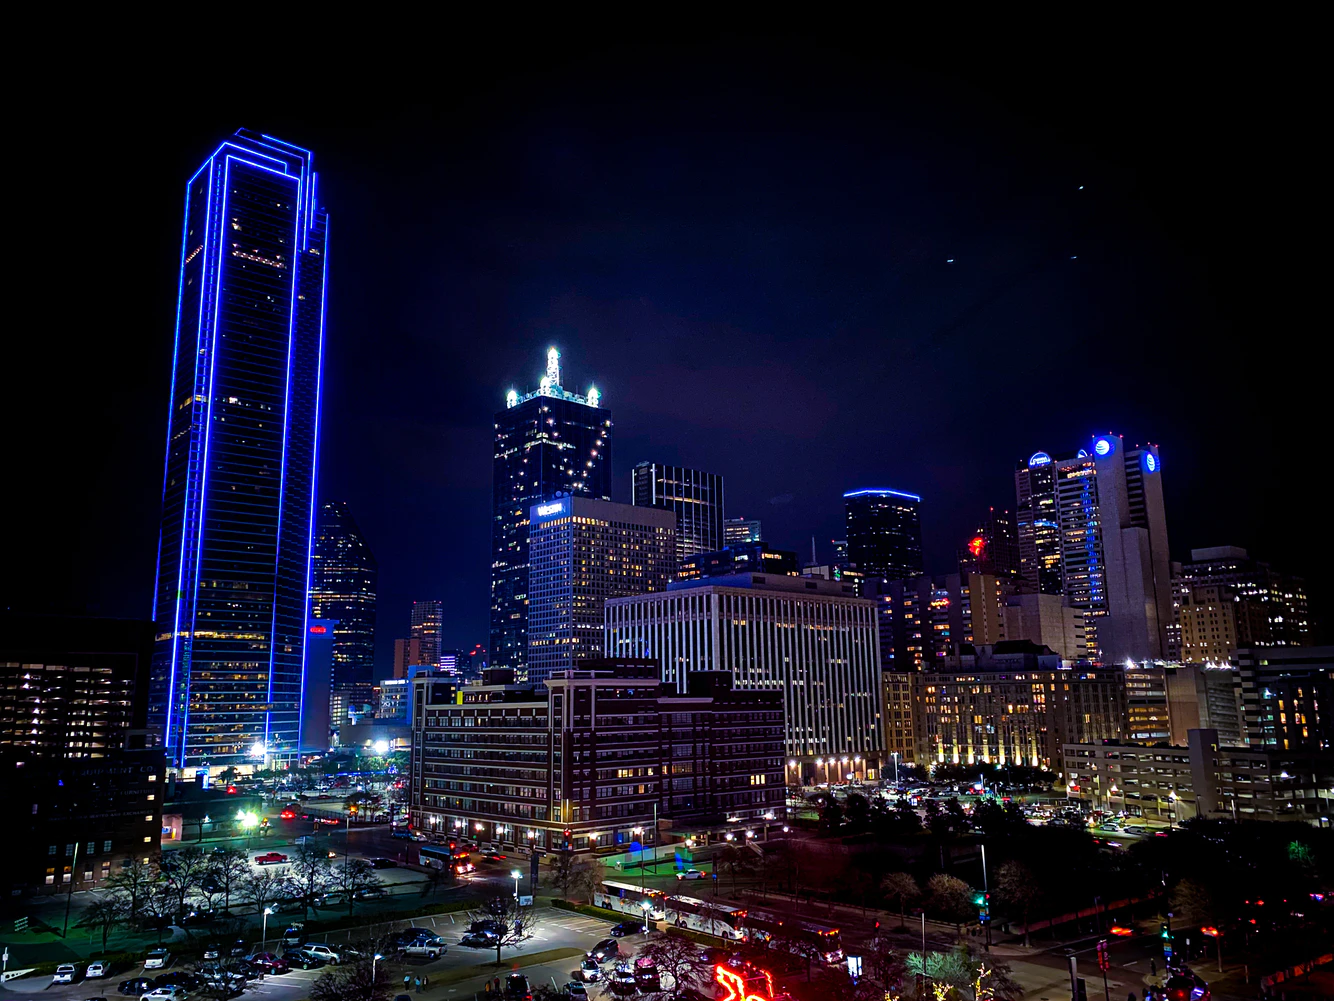 An aerial view of the skyline in Dallas, Texas at night.